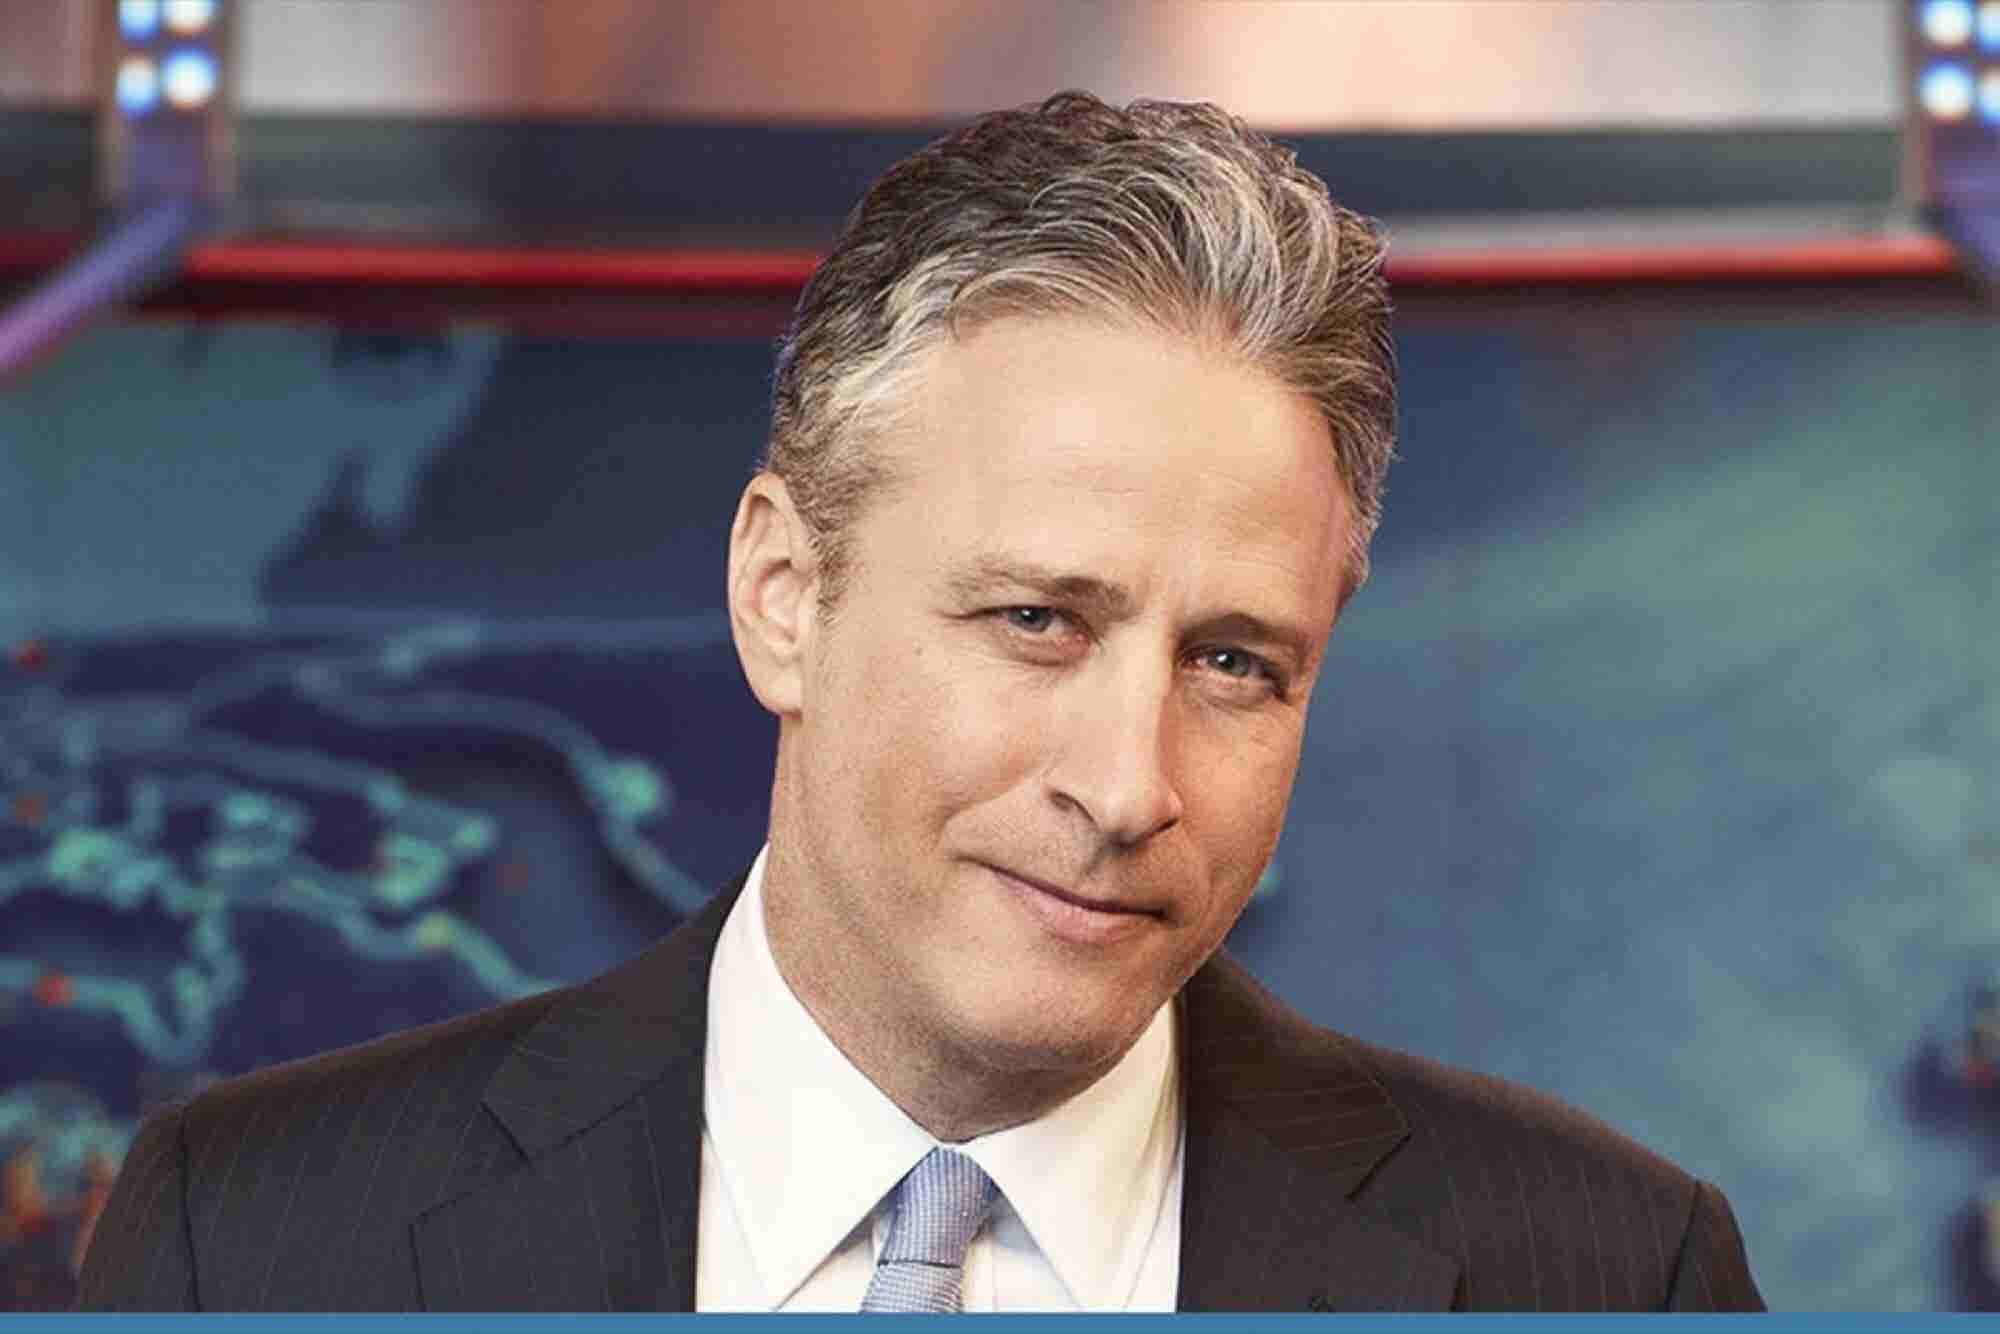 Arby's Bids Farewell to Its Favorite Hater, Jon Stewart, With an Ad Fe...